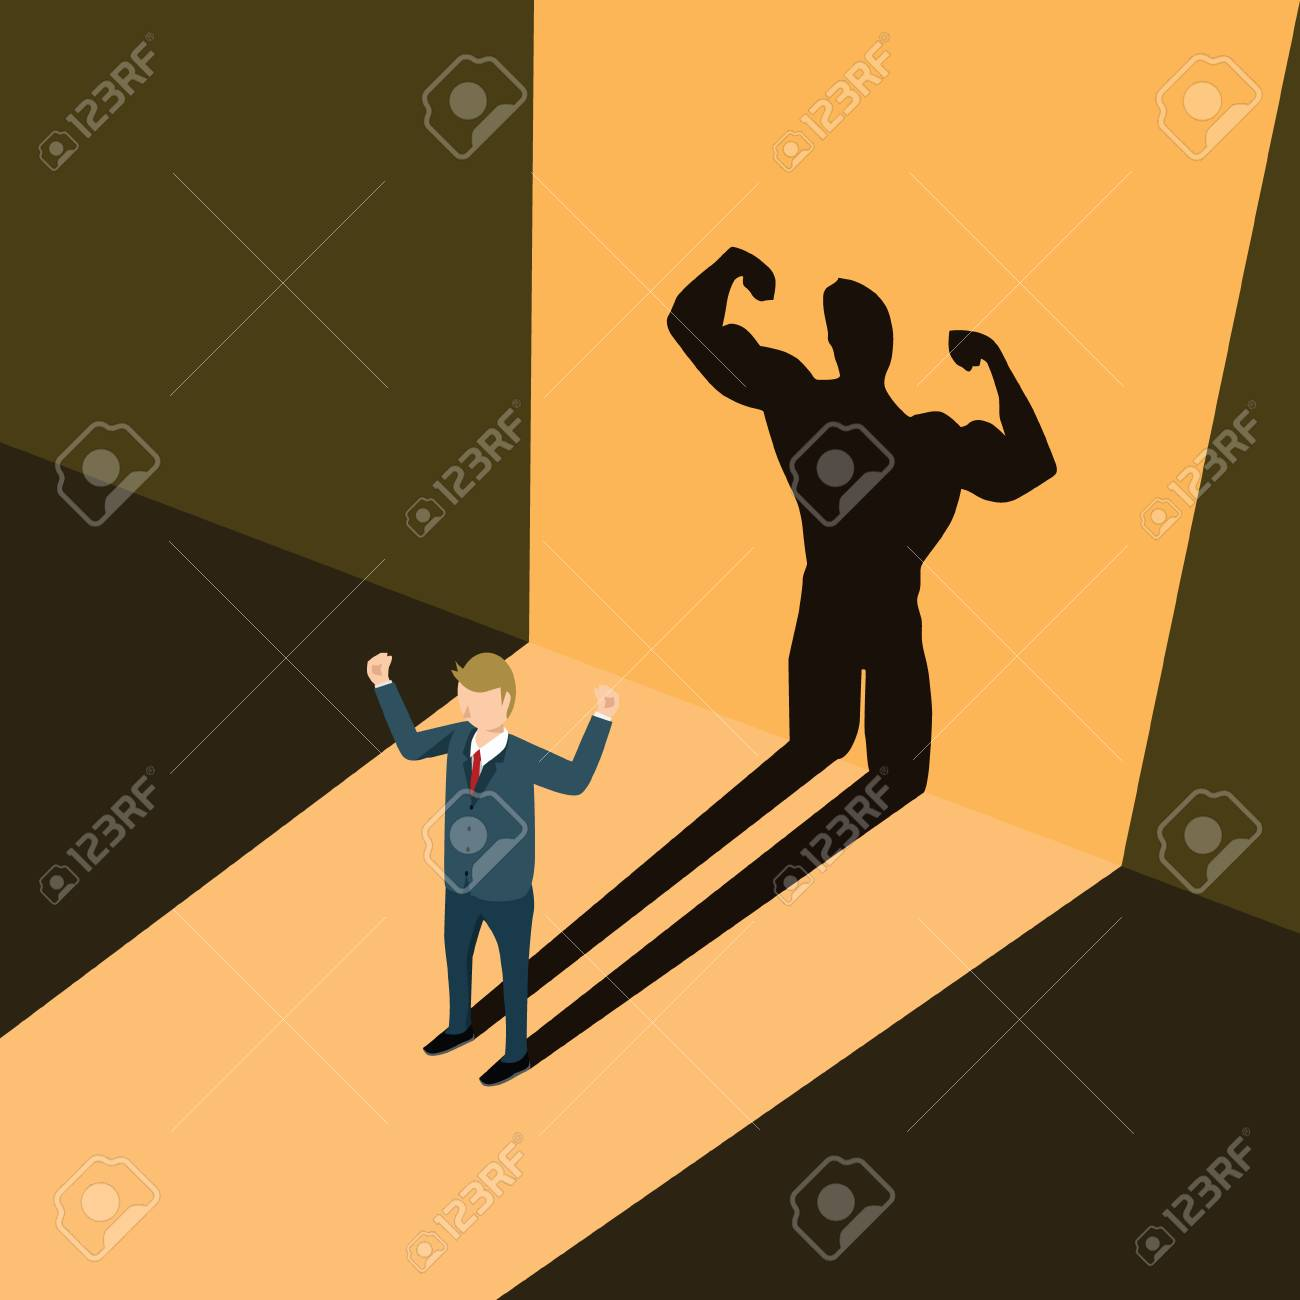 A business man casting shadow an athlete career illustration. - 82506594